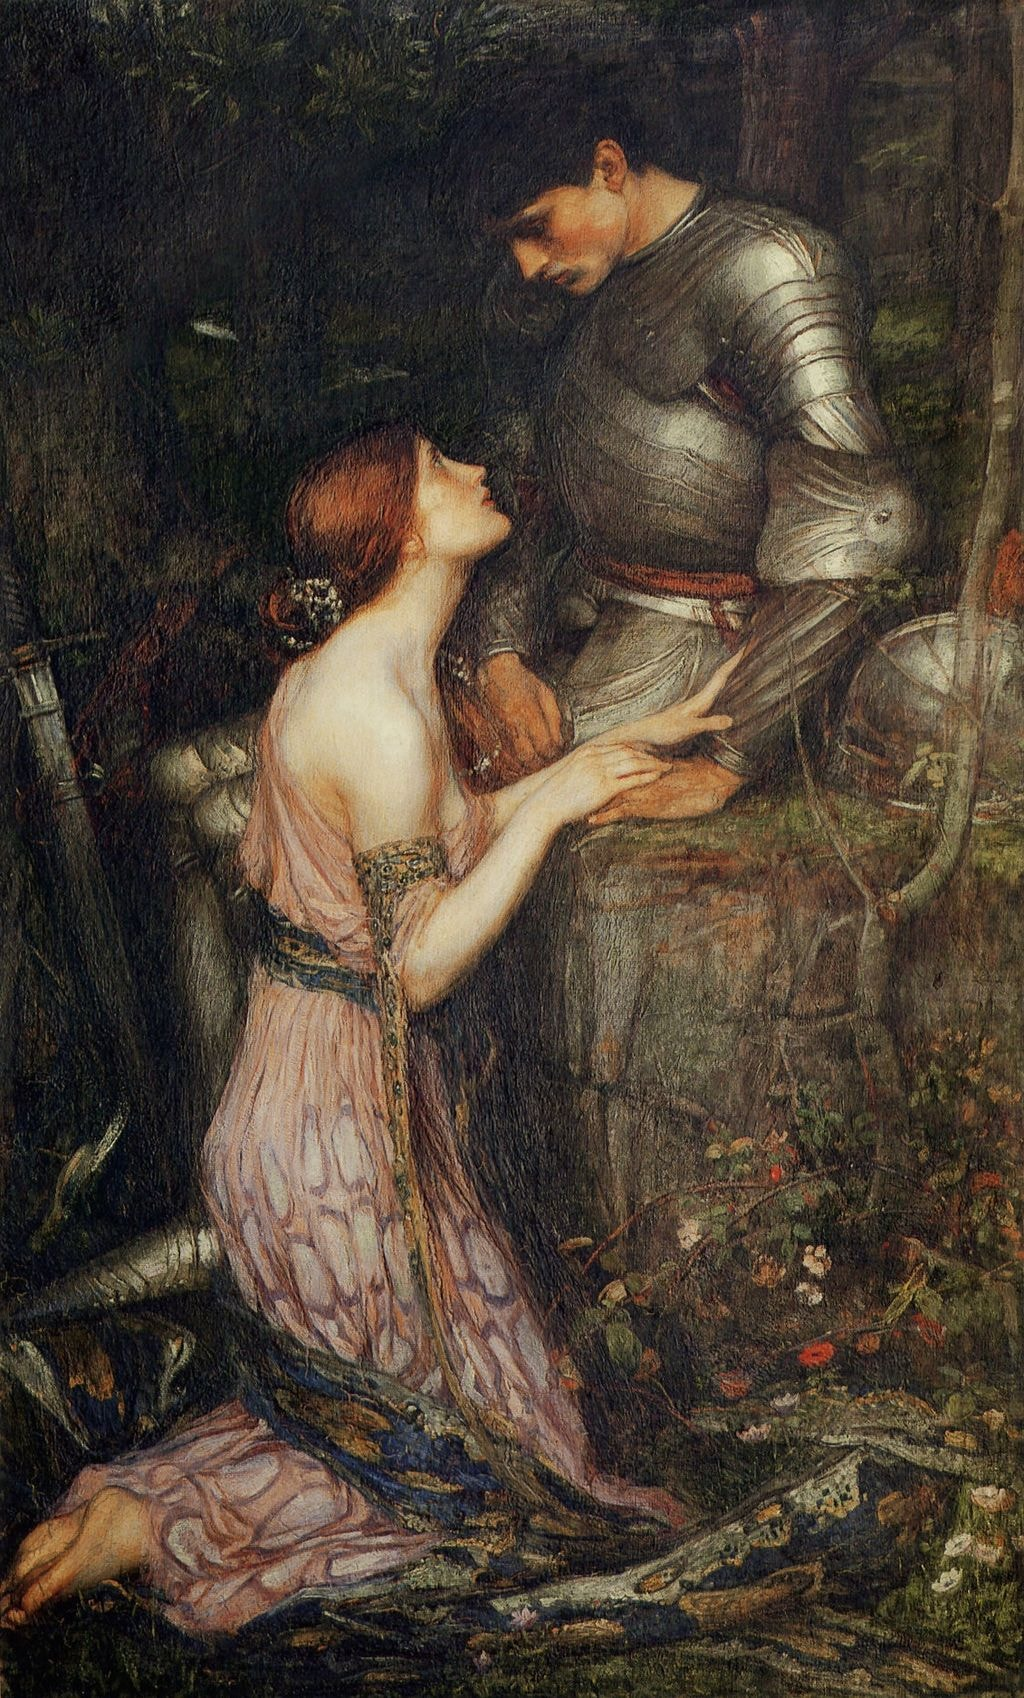 "John William Waterhouse, 'Lamia and the Soldier,' 1905 | <a href=""https://commons.wikimedia.org/wiki/File:Lamia_and_the_Soldier.jpg"" target=""_blank"" rel=""noopener"">© WikiCommons</a>"